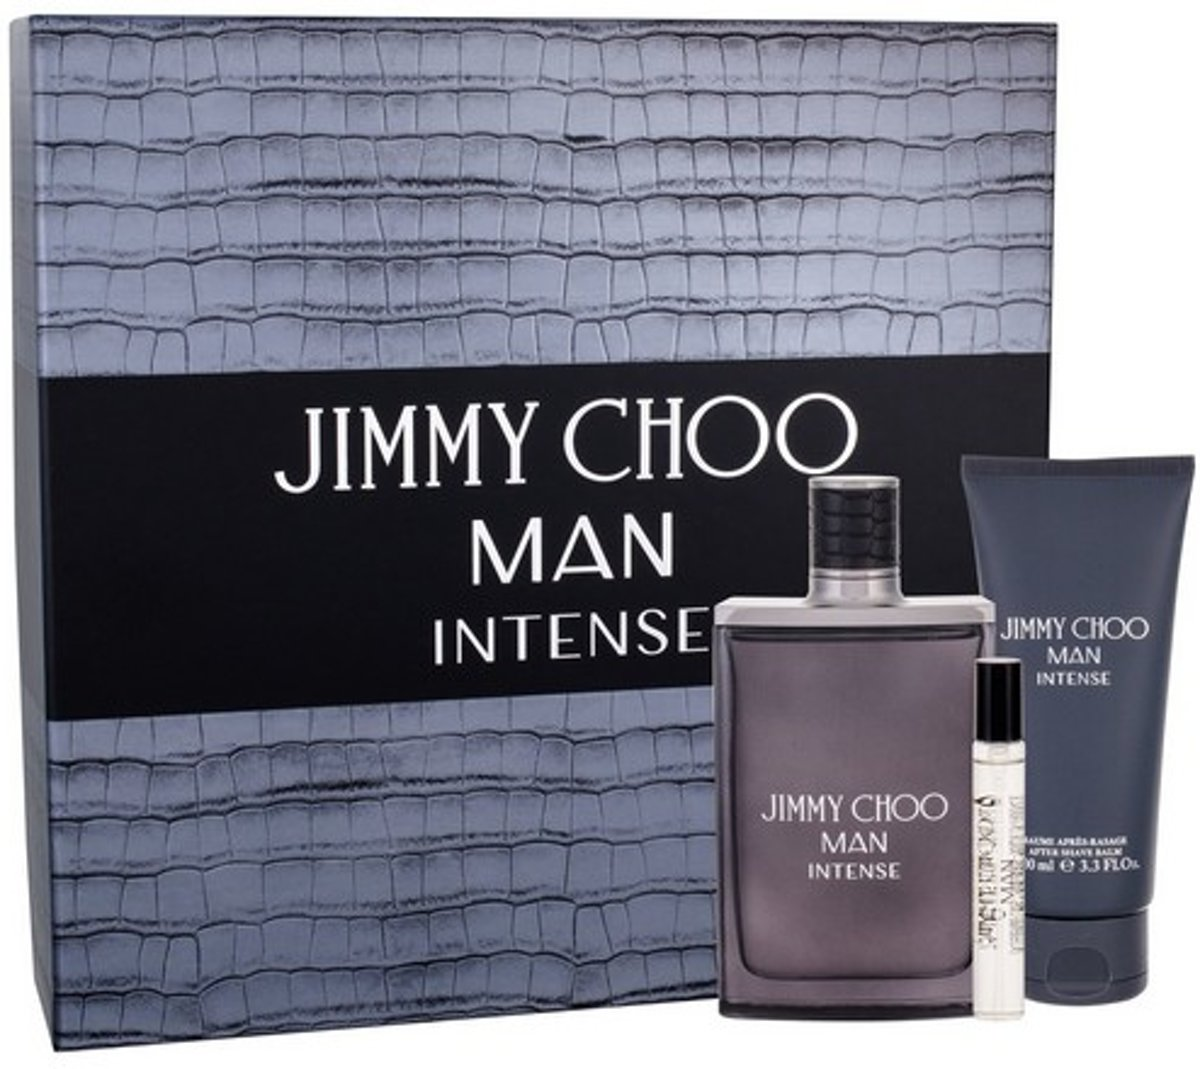 Jimmy Choo Man Intense Giftset - 100 ml eau de toilette spray + 7,5 ml eau de toilette tasspray + 100 ml aftershave balm - herenparfum